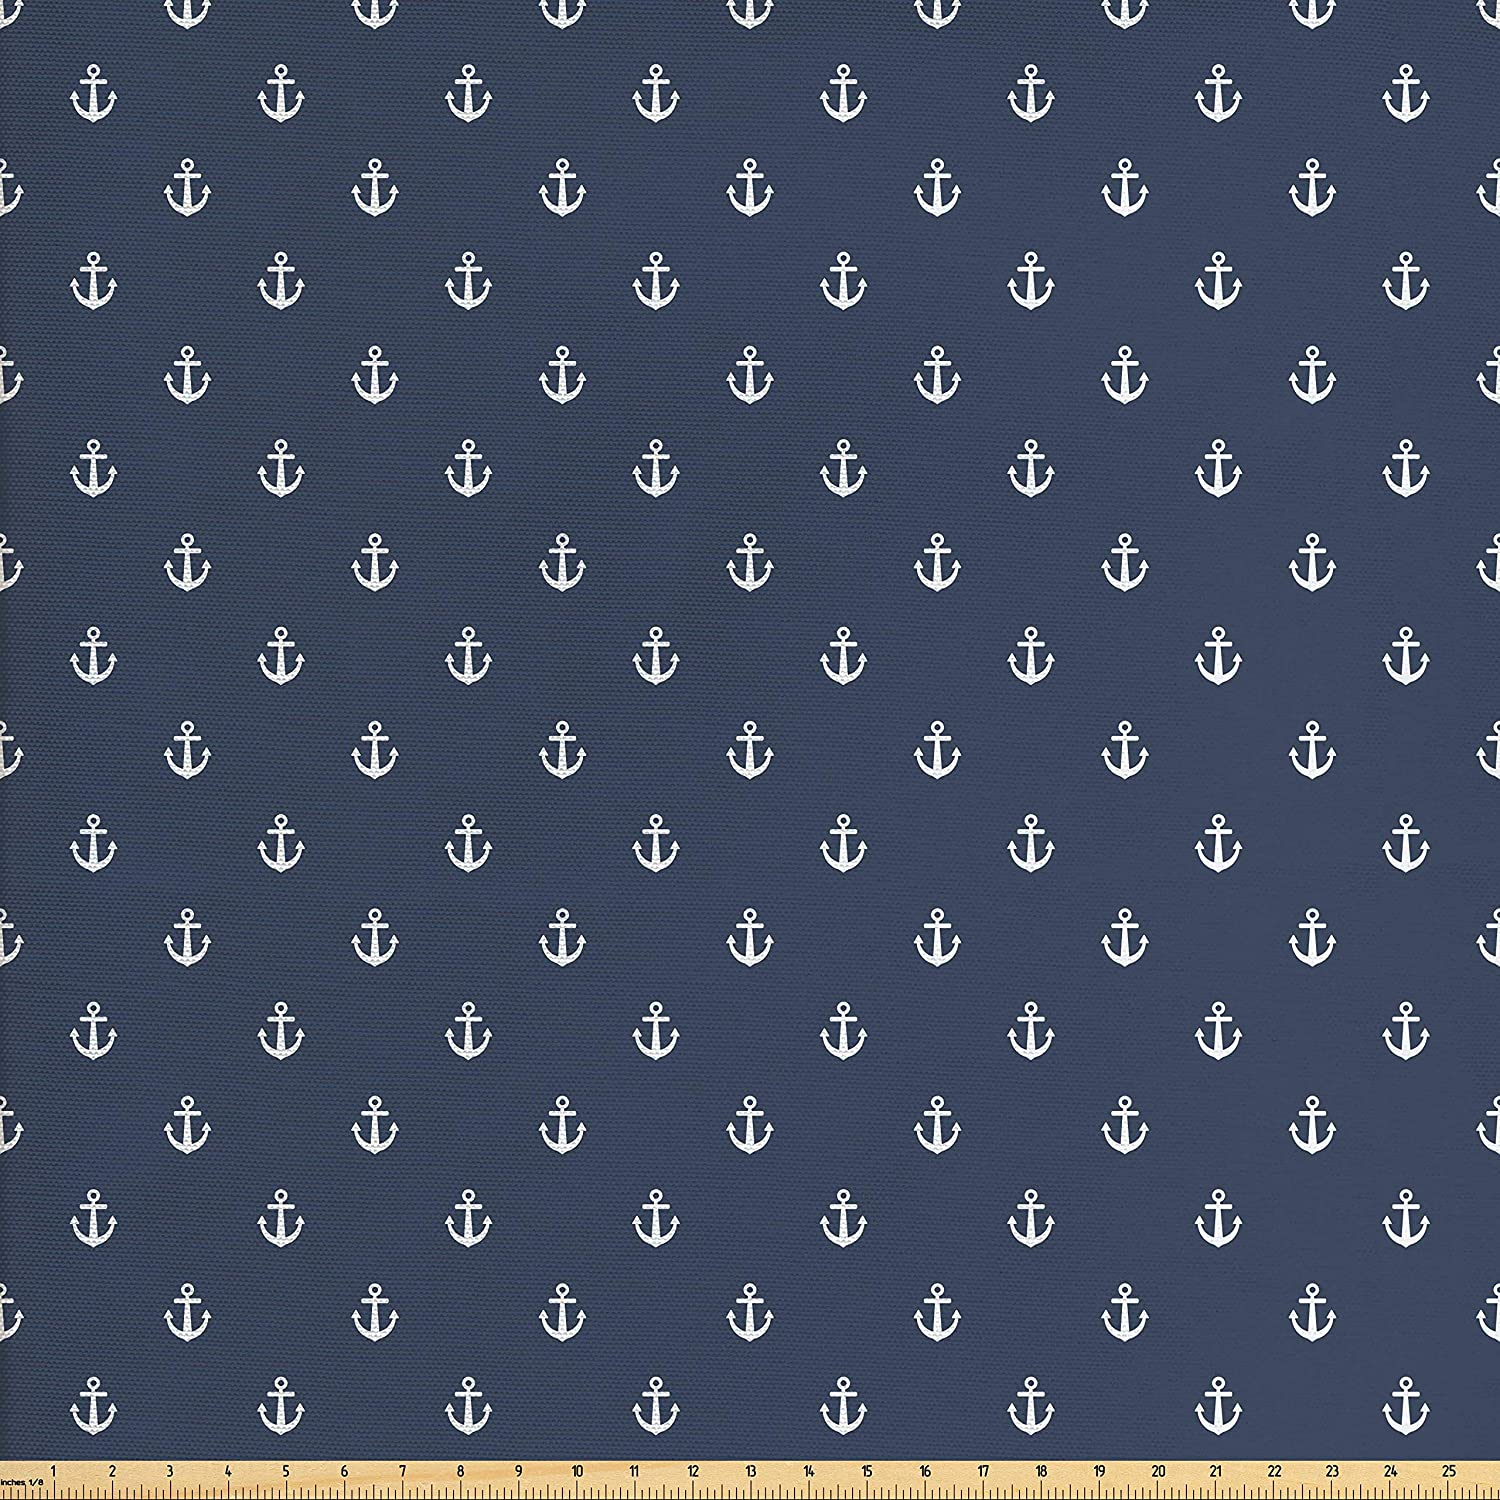 Ambesonne Navy Blue Fabric by The Yard, Nautical Classical Pattern with White Little Anchor Sea Travel Cruise, Decorative Fabric for Upholstery and Home Accents, 2 Yards, Bluegrey White